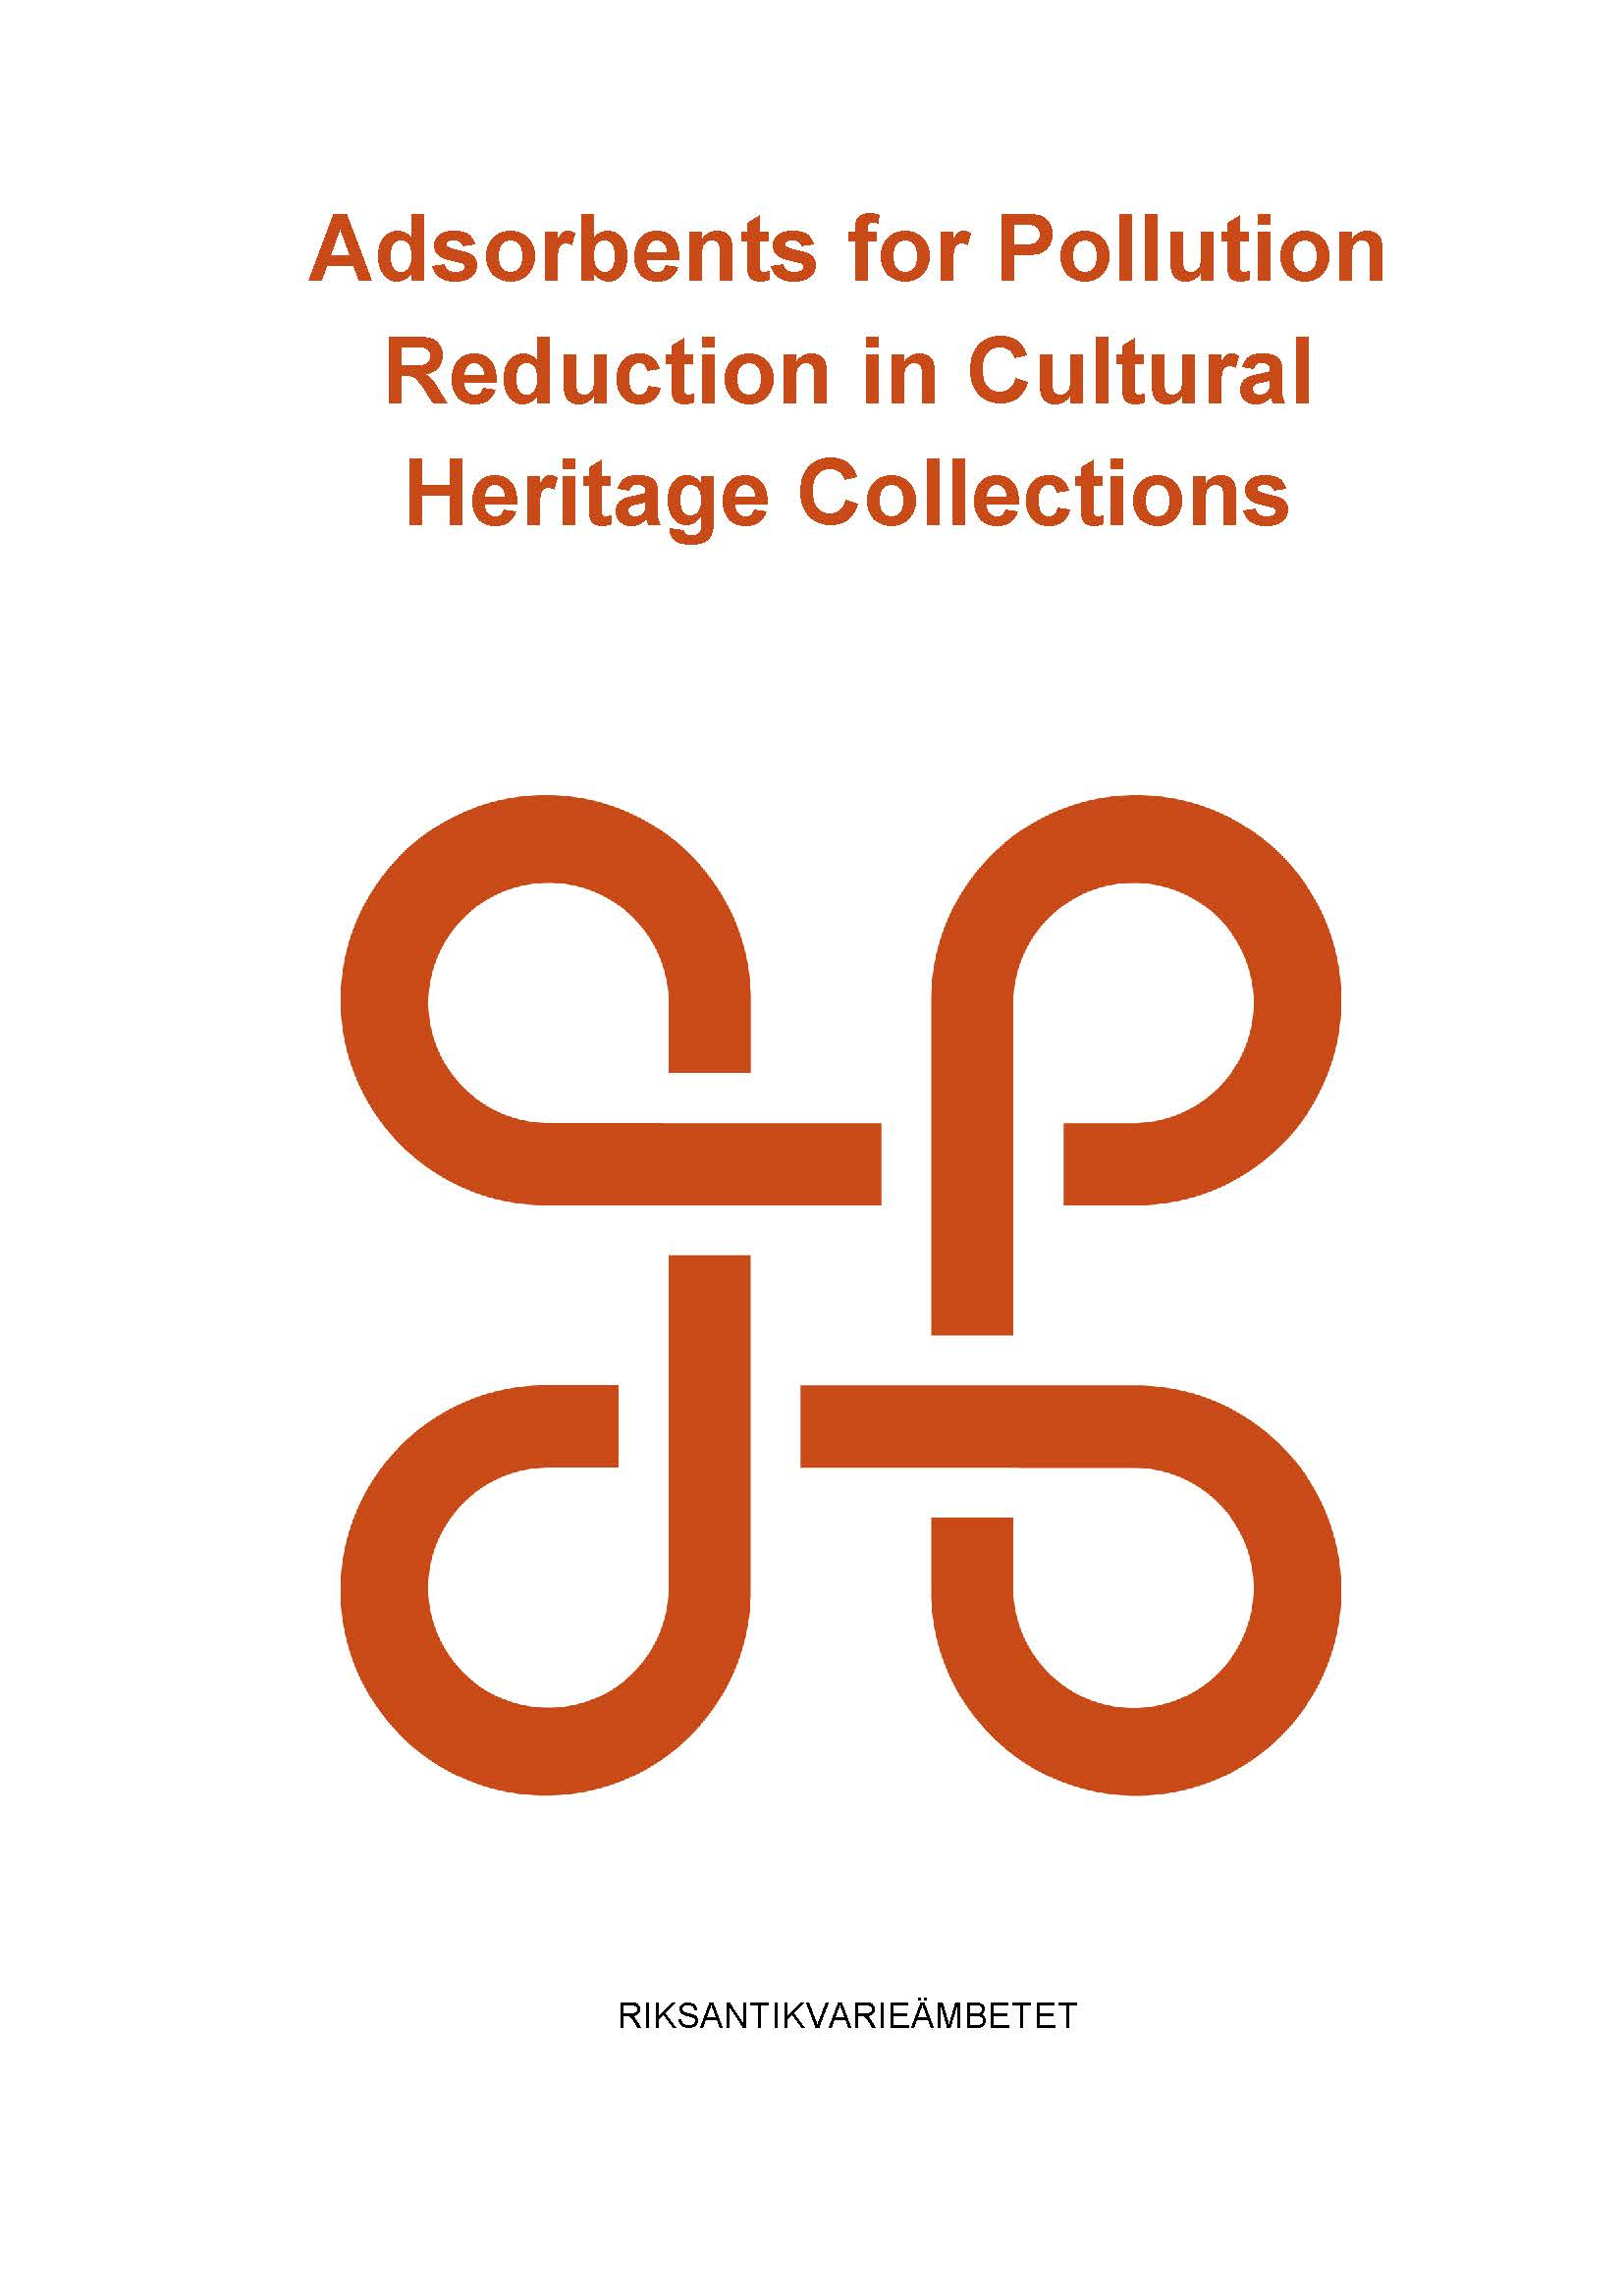 Adsorbents for Pollution Reduction in Cultural Heritage Collections